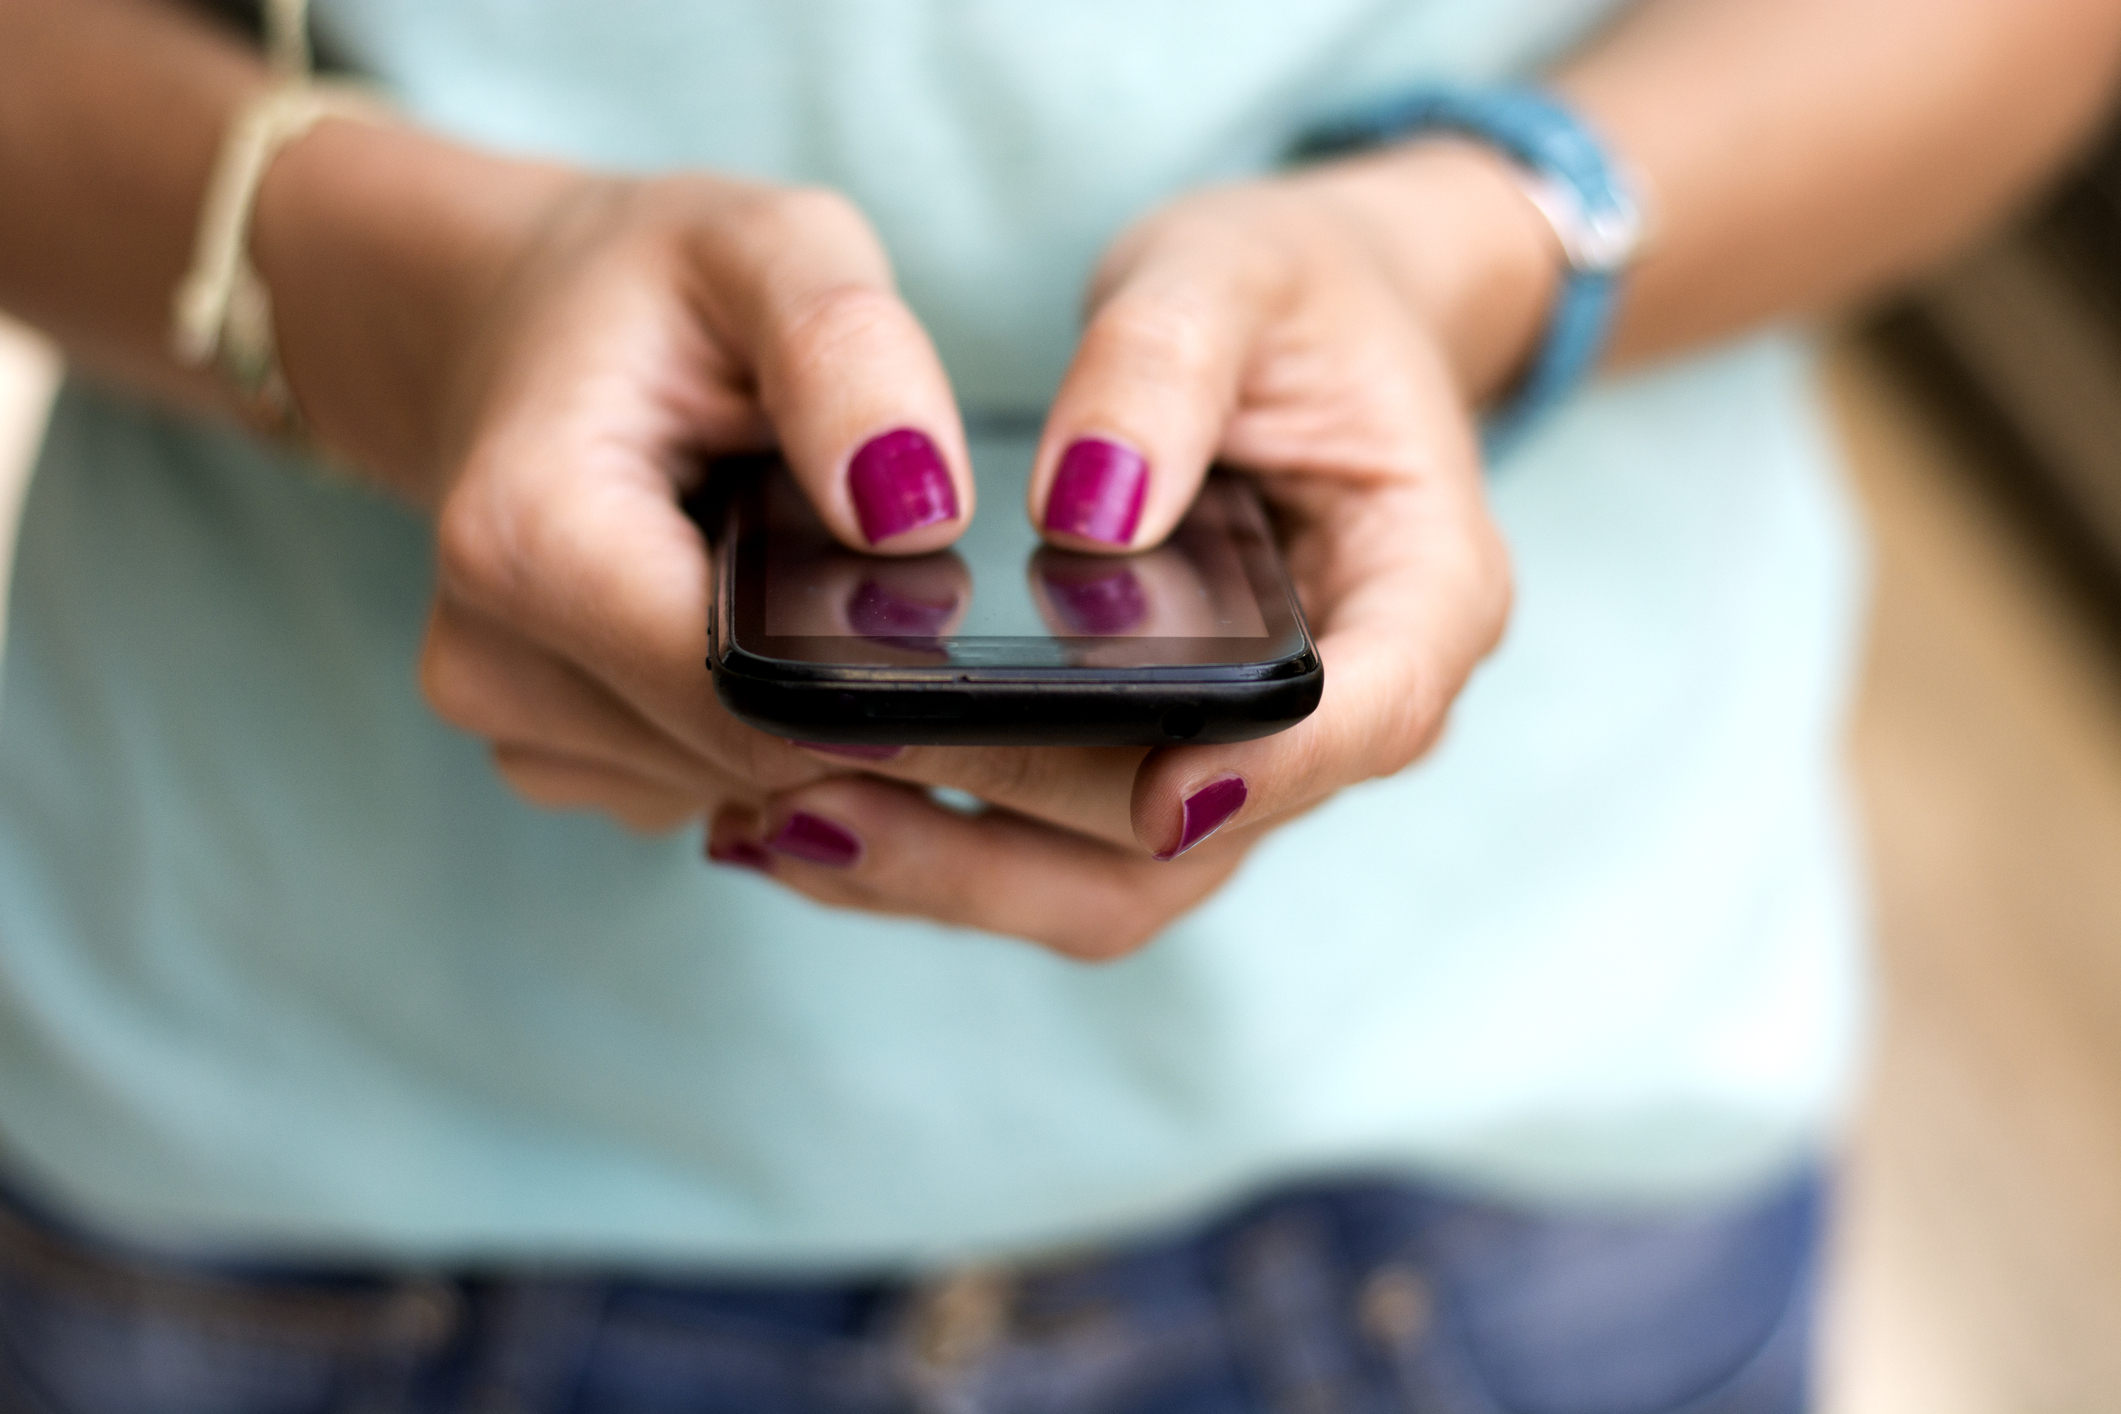 Why I Caved and Got My Tween a Cell Phone - and How I'm Keeping Her Safe